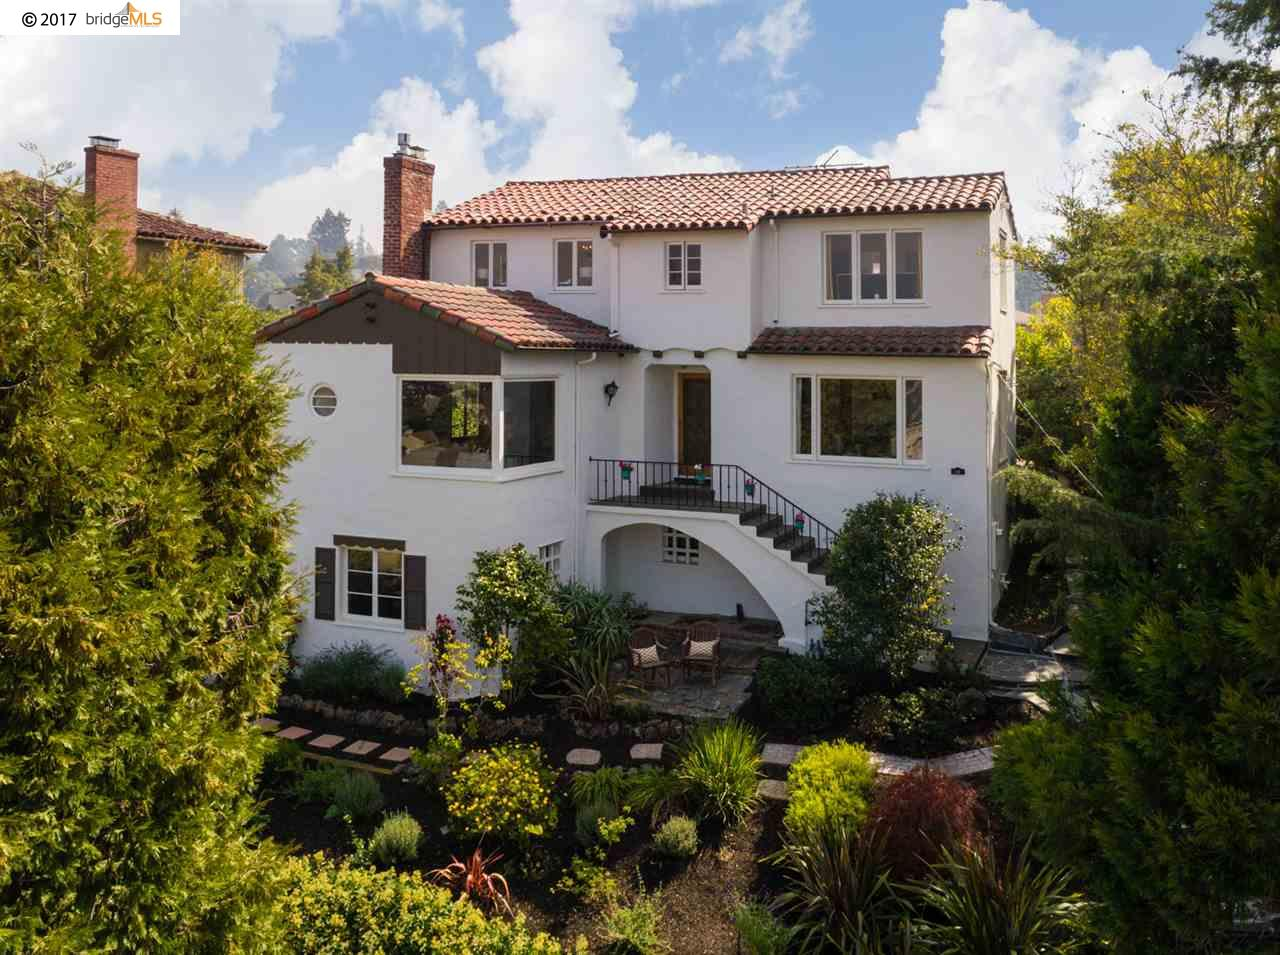 Single Family Home for Sale at 41 Sonia Street 41 Sonia Street Oakland, California 94618 United States